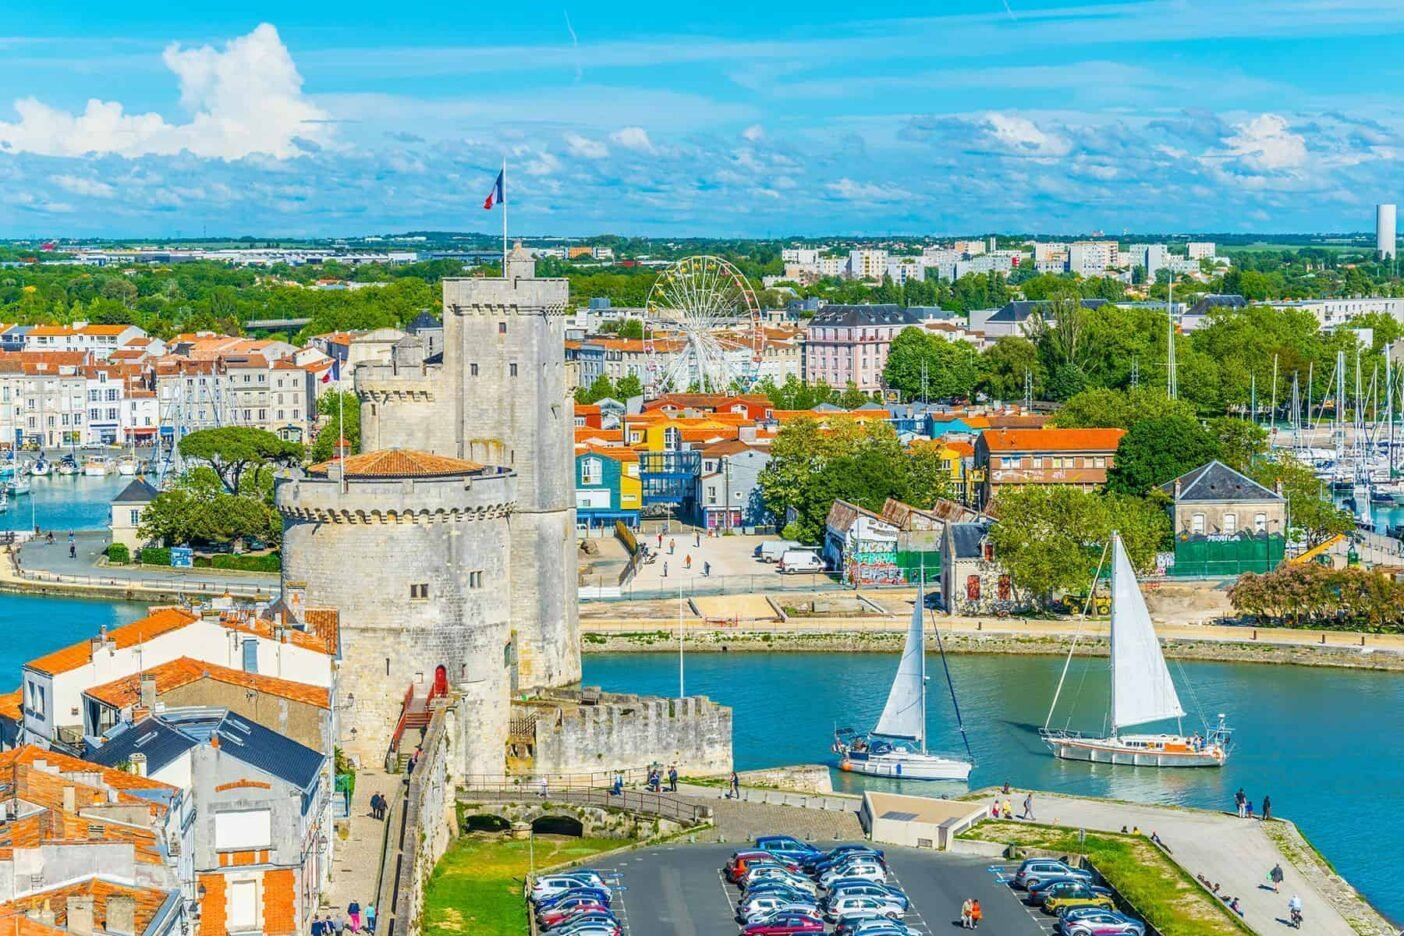 La Rochelle: a stone rower and a beautiful harbour with sailing boats on a sunny day